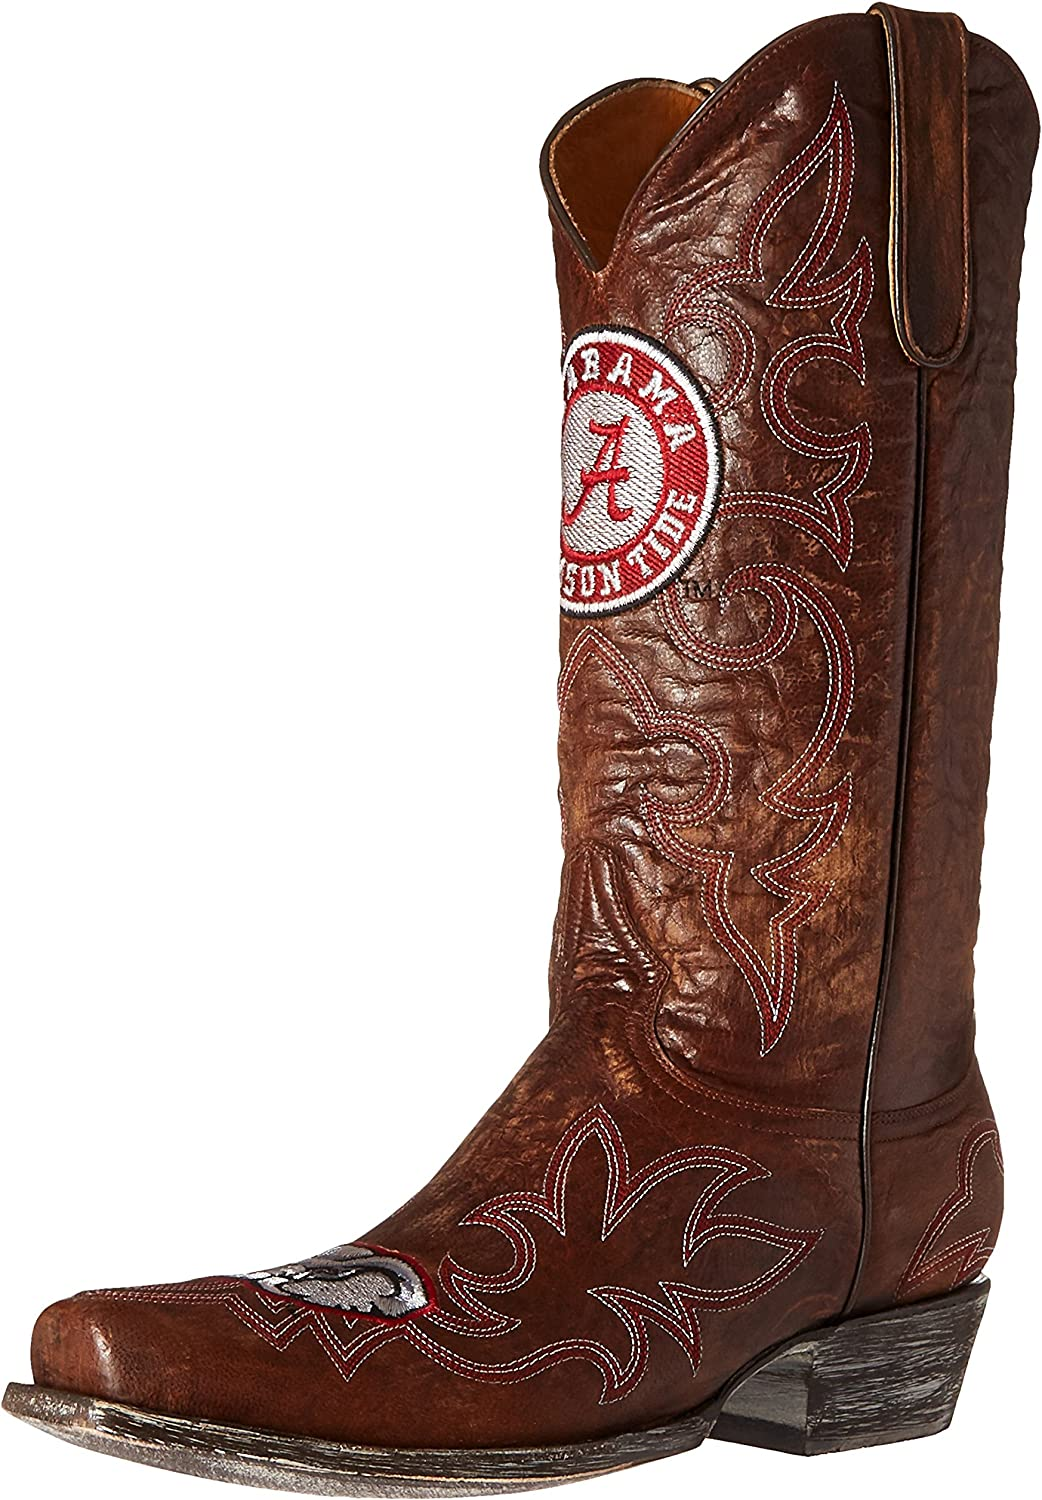 NCAA Alabama Crimson Tide Men's Gameday Boots